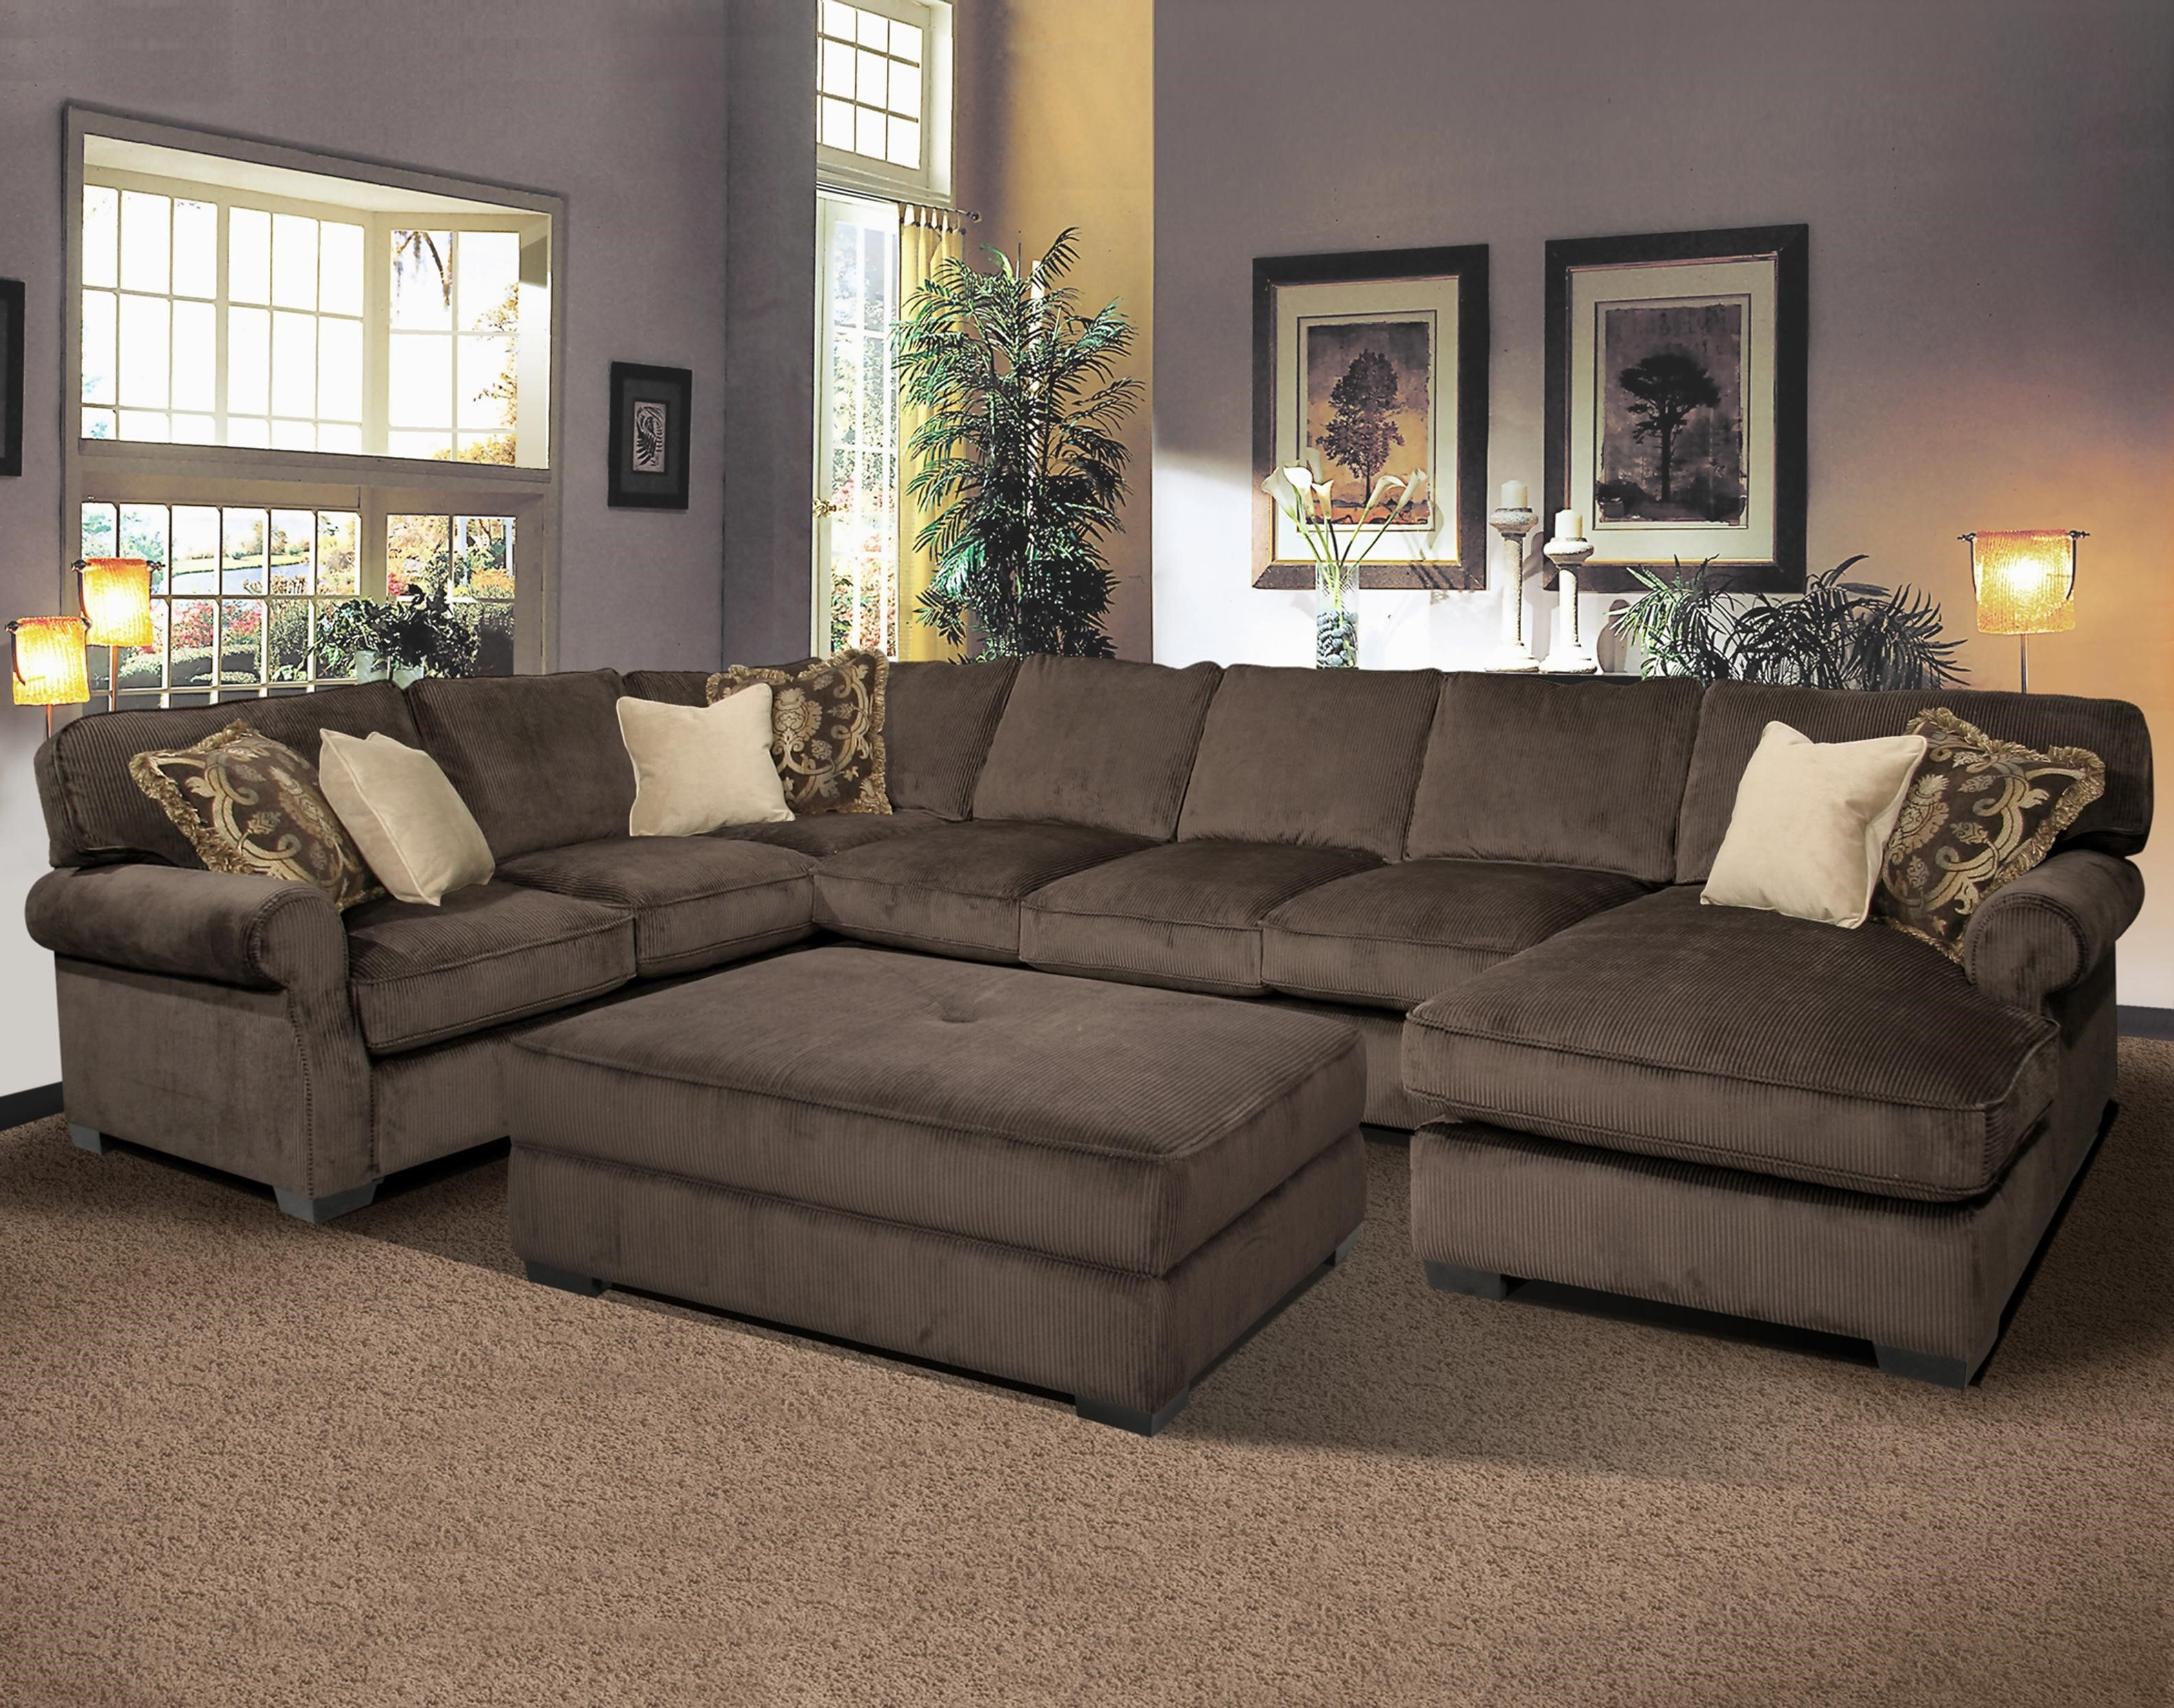 Recent Tulsa Sectional Sofas In Comfortable Living Room Sofas Design With Elegant Overstuffed (View 4 of 15)